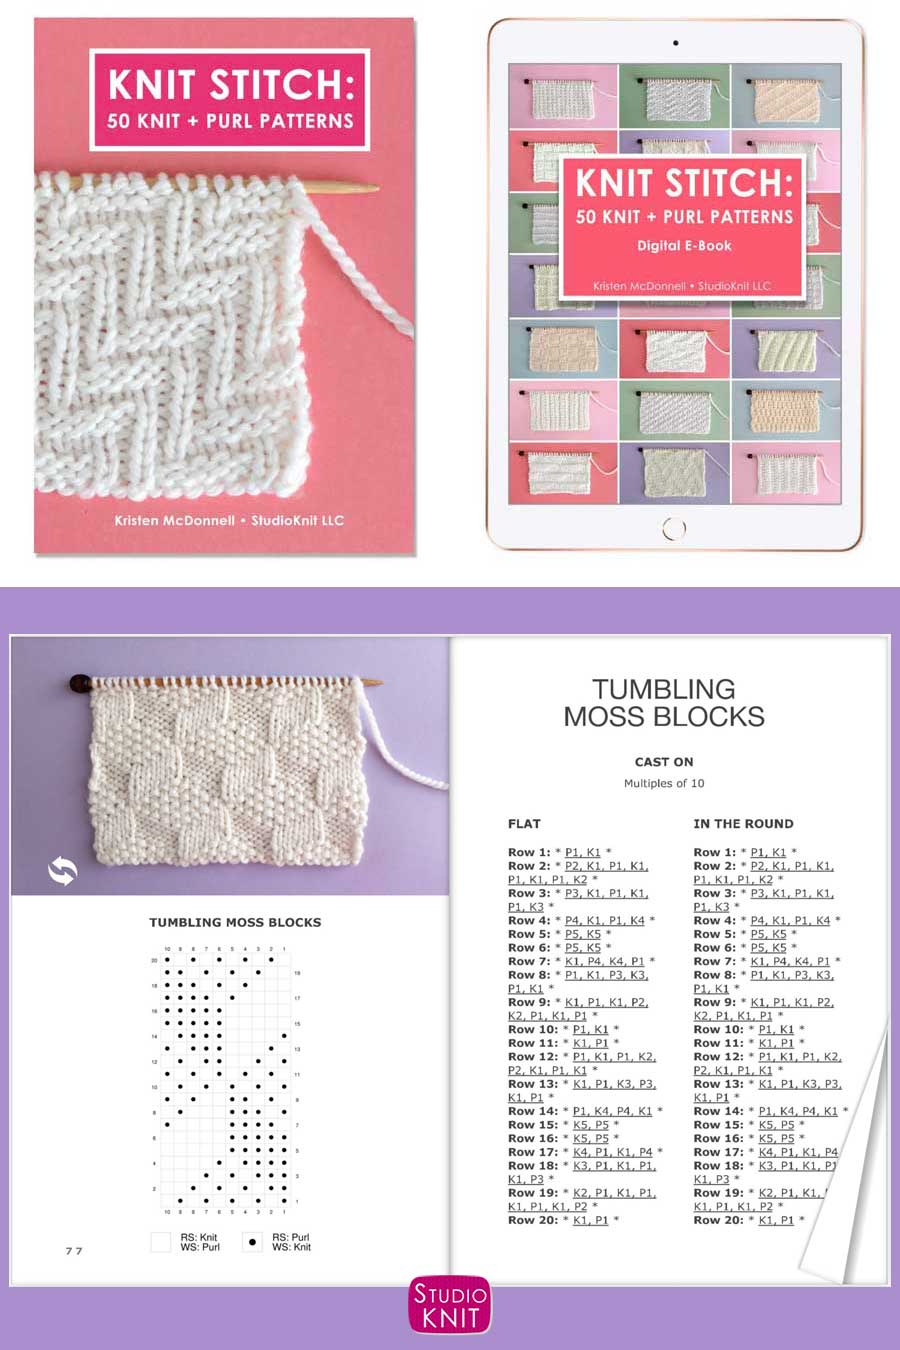 Knit Stitch Pattern Book with Tumbling Moss Blocks Stitch